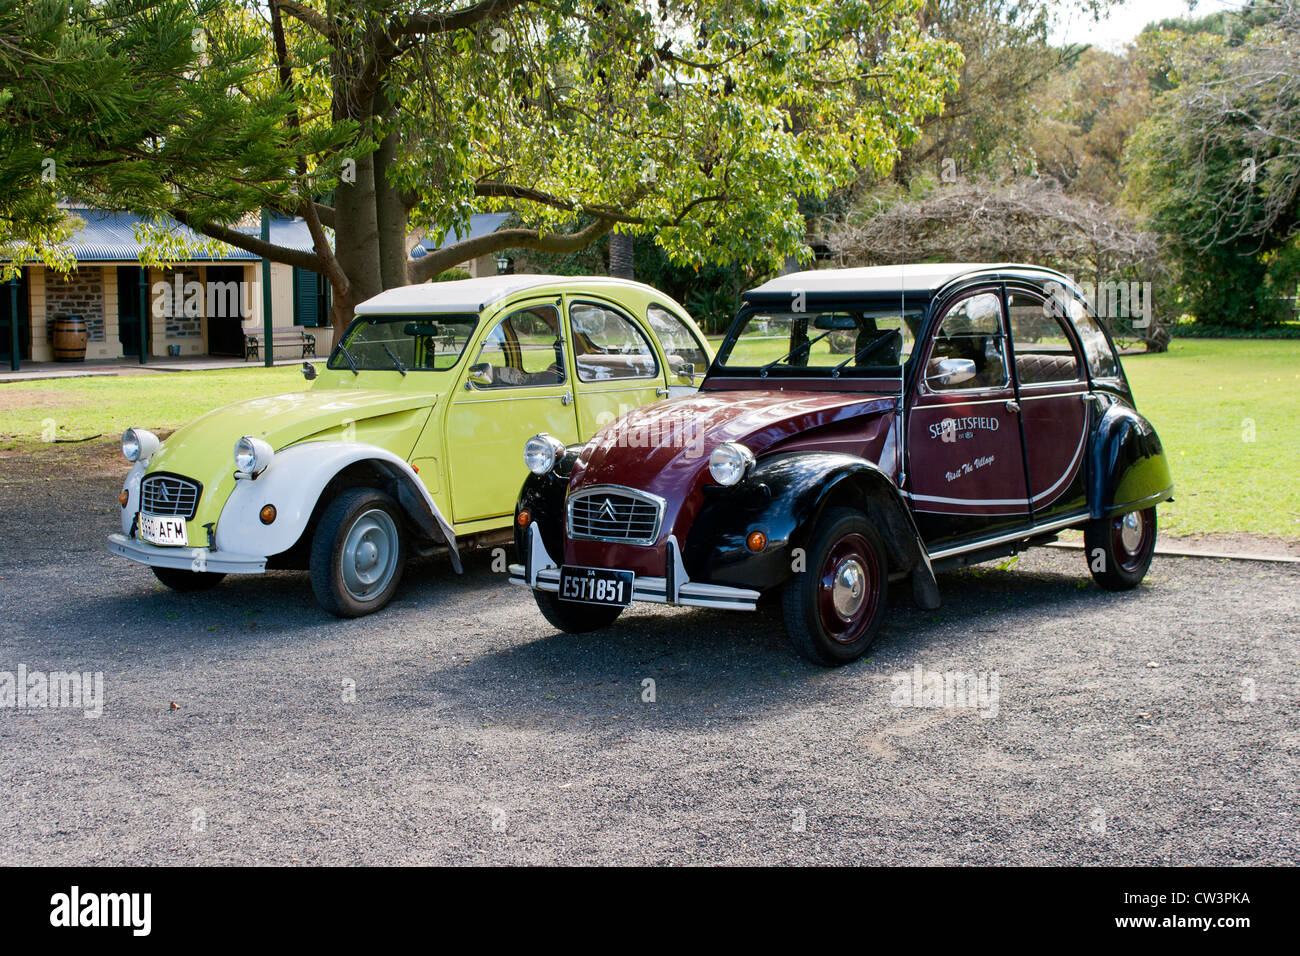 Two vintage Citreon Cars at Seppeltsfield Winery in the Barossa Valley South Australia - Stock Image